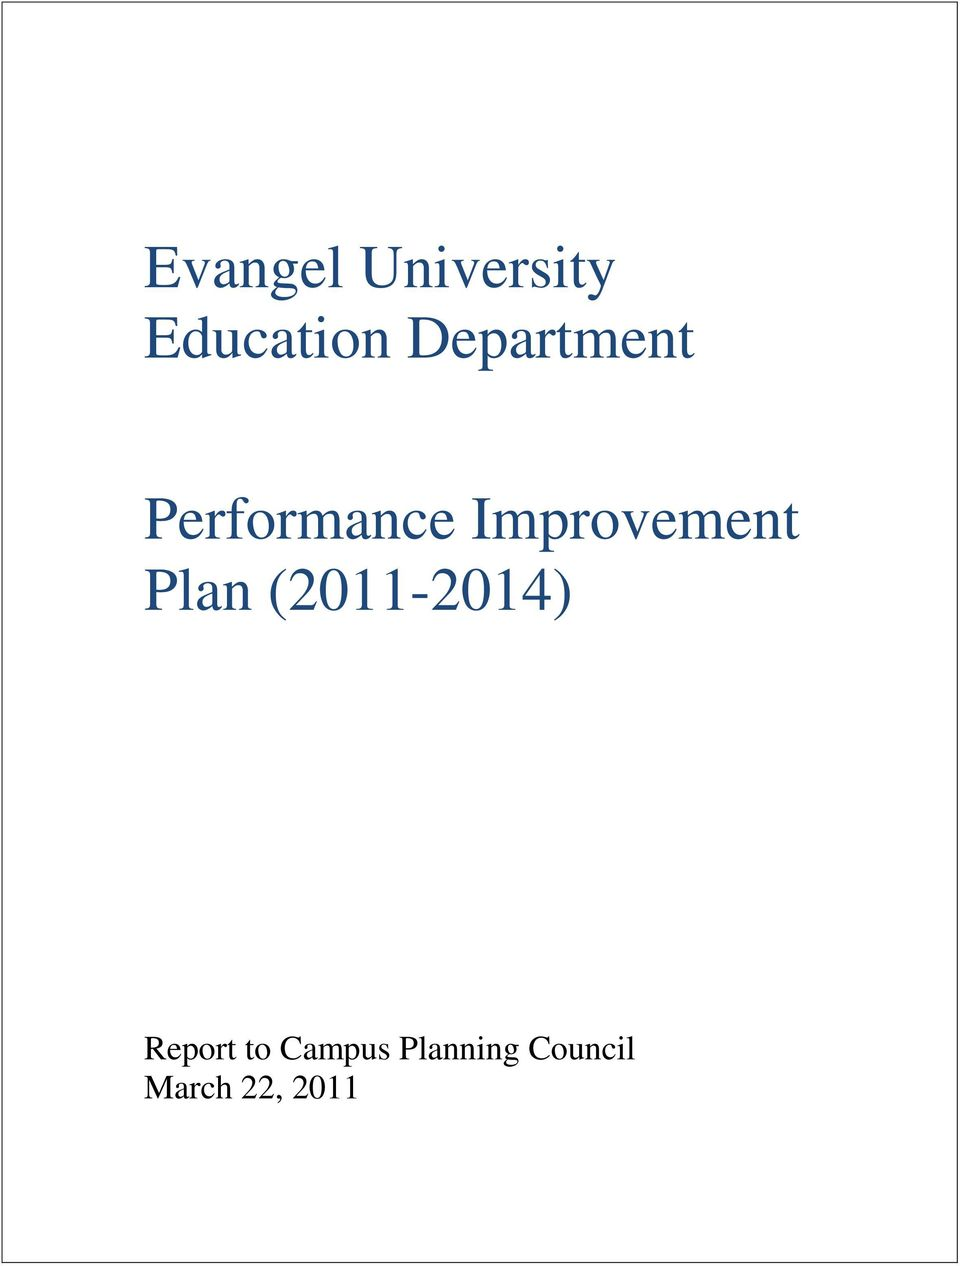 2011 Strategic Planning Report to Campus Planning